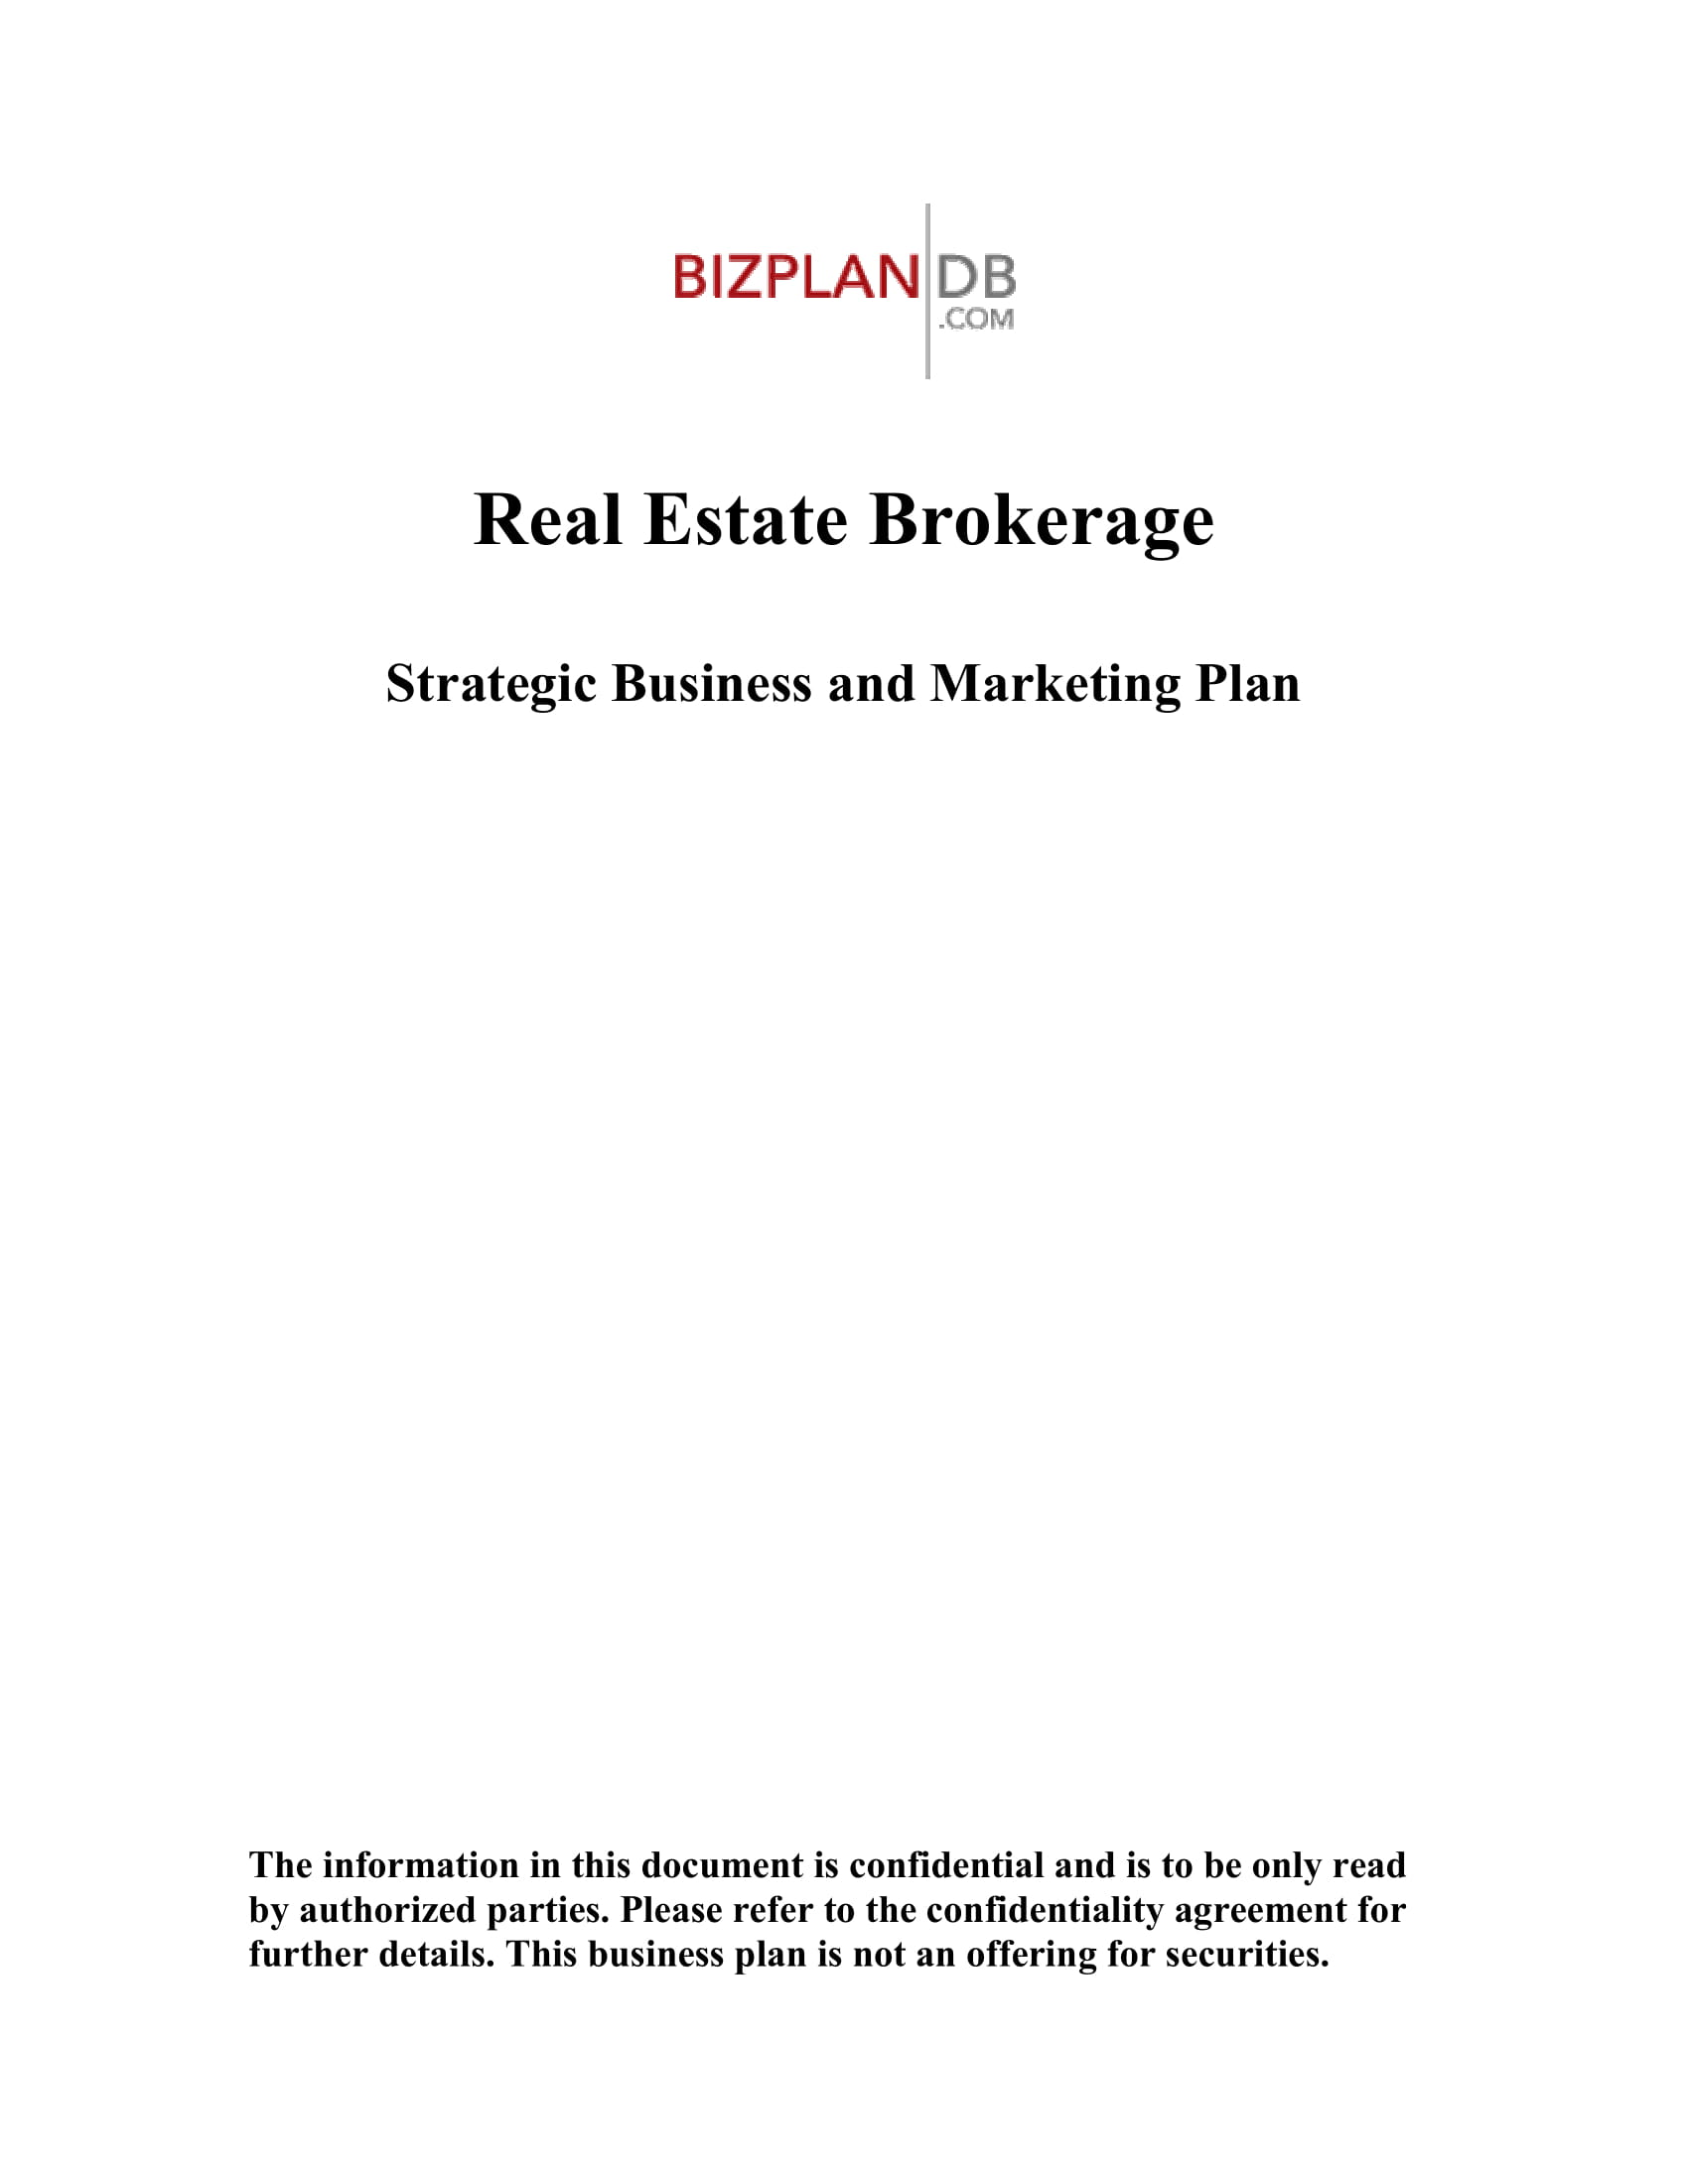 real estate brokerage strategic business and marketing plan example 01